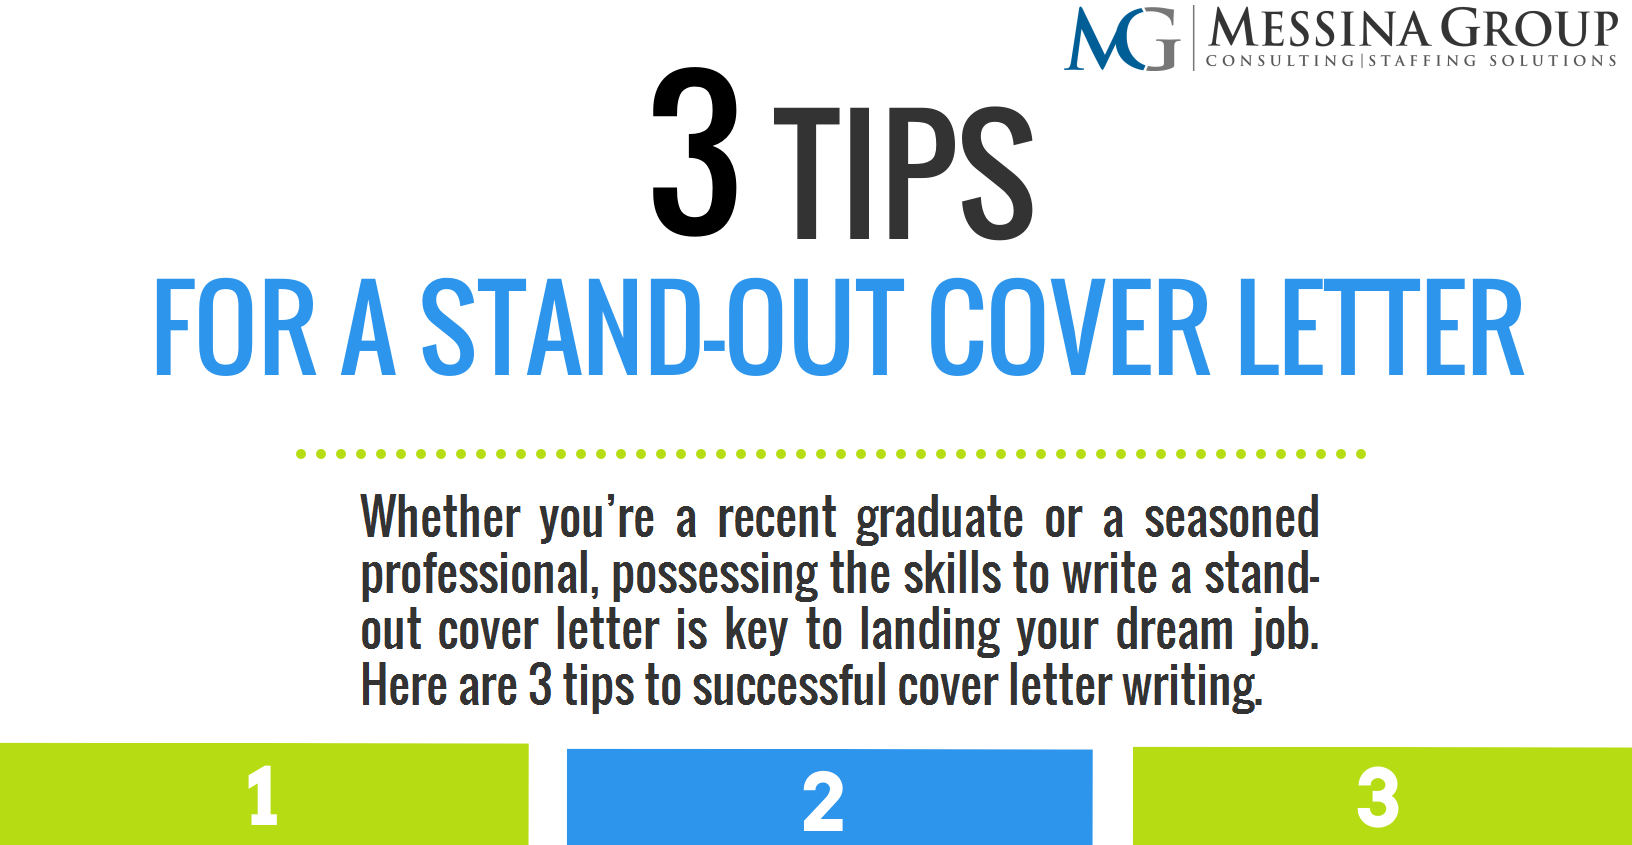 tips for stand out cover letter writing - Cover Letter Writing Tips